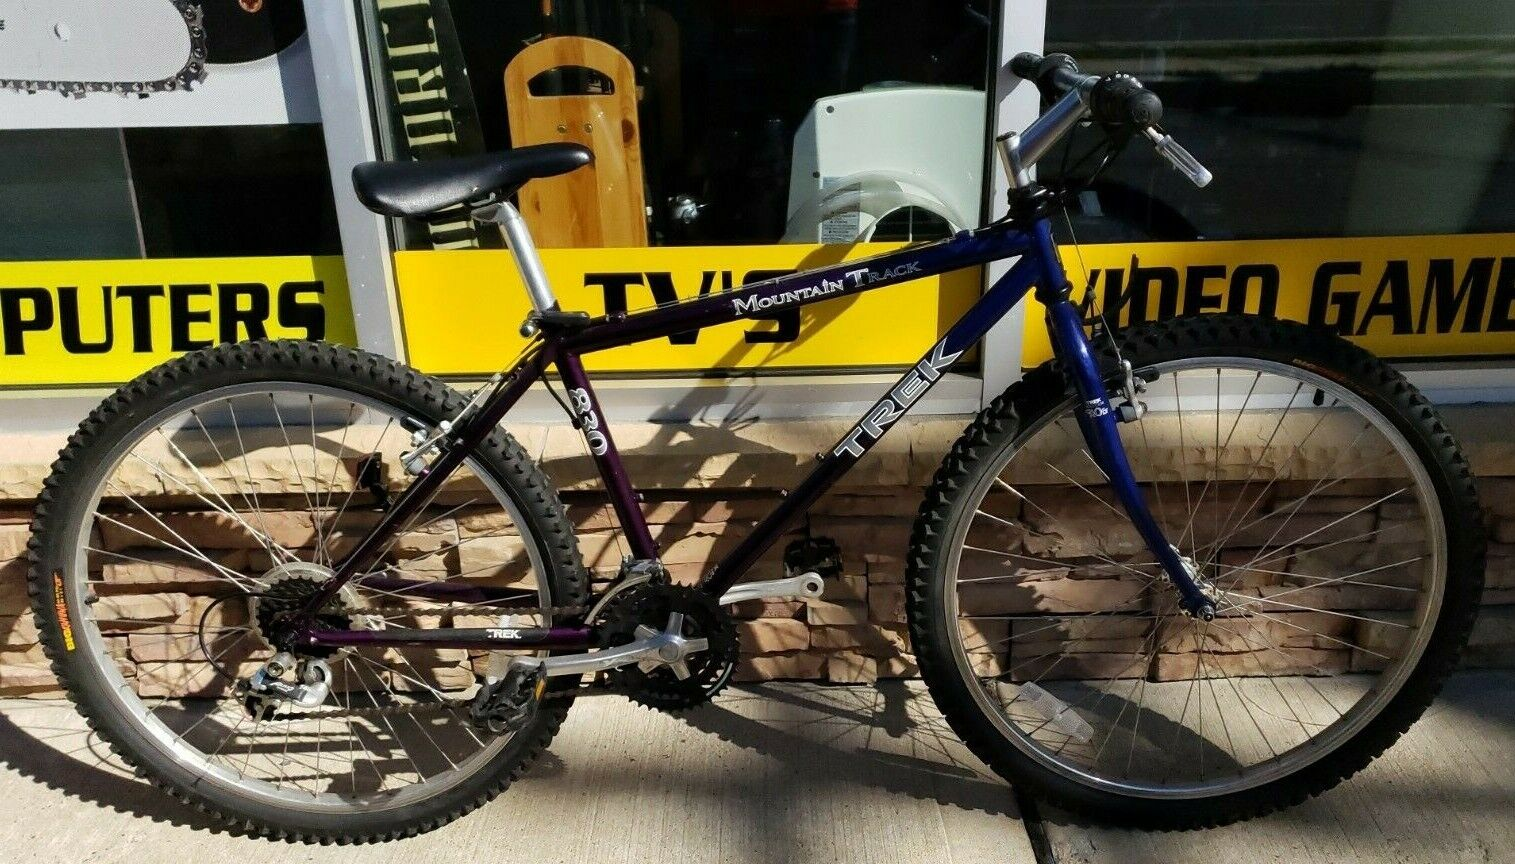 5316ebf6bef Trek Mountain Track 830 Mountain Bicycle Pre-owned Local Pickup Only NJ  08731